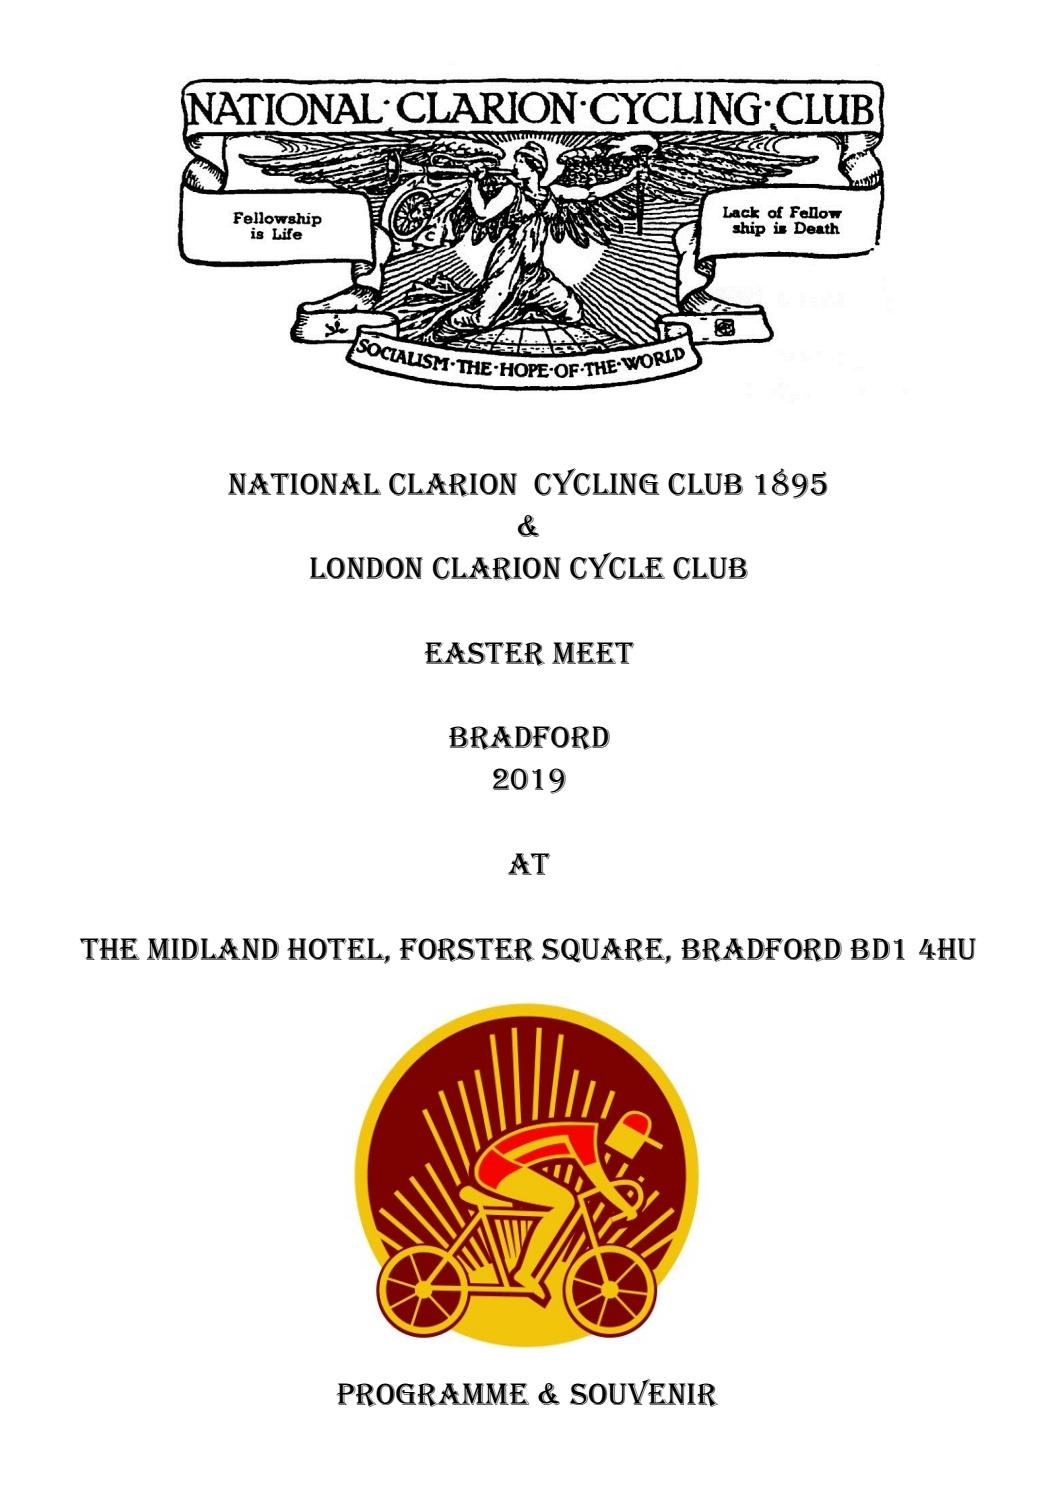 London Cycling Club >> National Clarion Cycling Club 1895 London Clarion Cycle